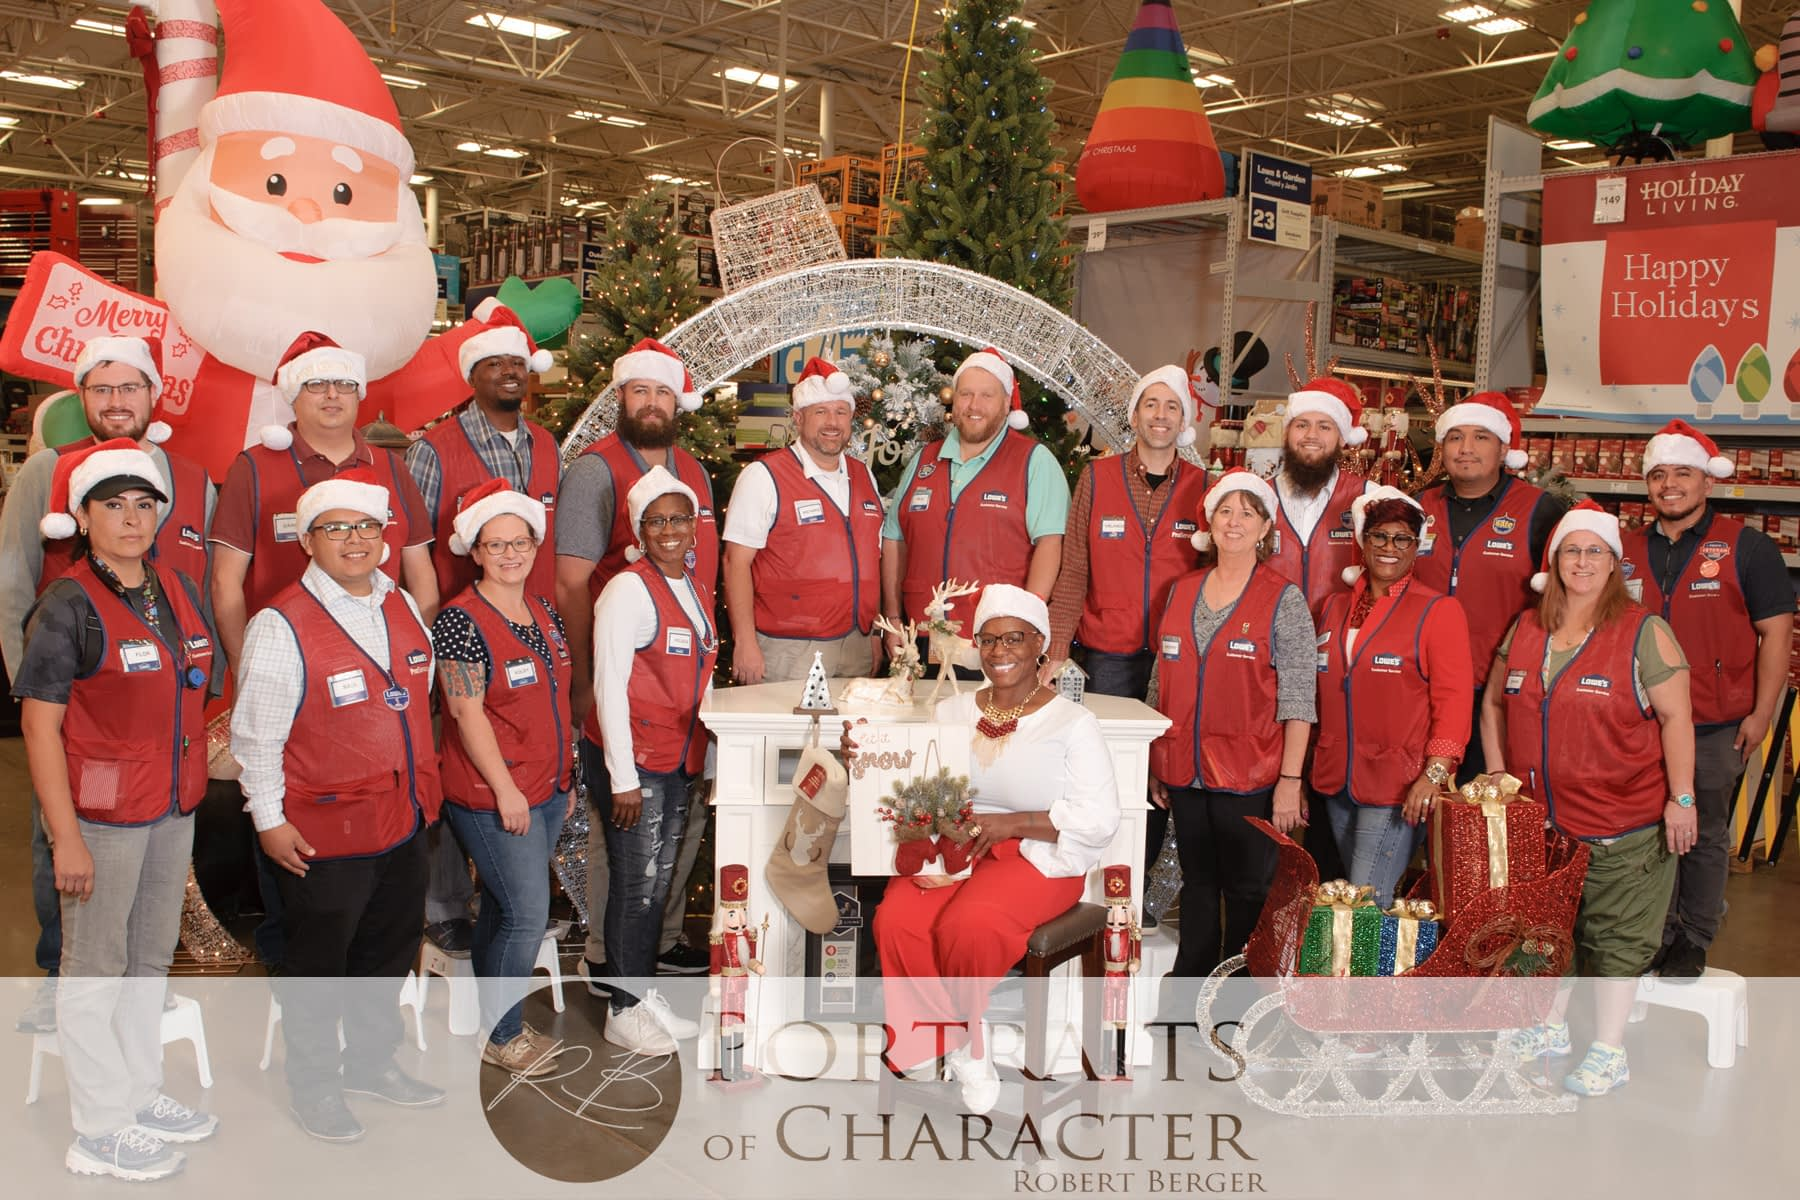 houston group photos group photography photo christmas cards business christmas cards business holiday cards corporate christmas cards